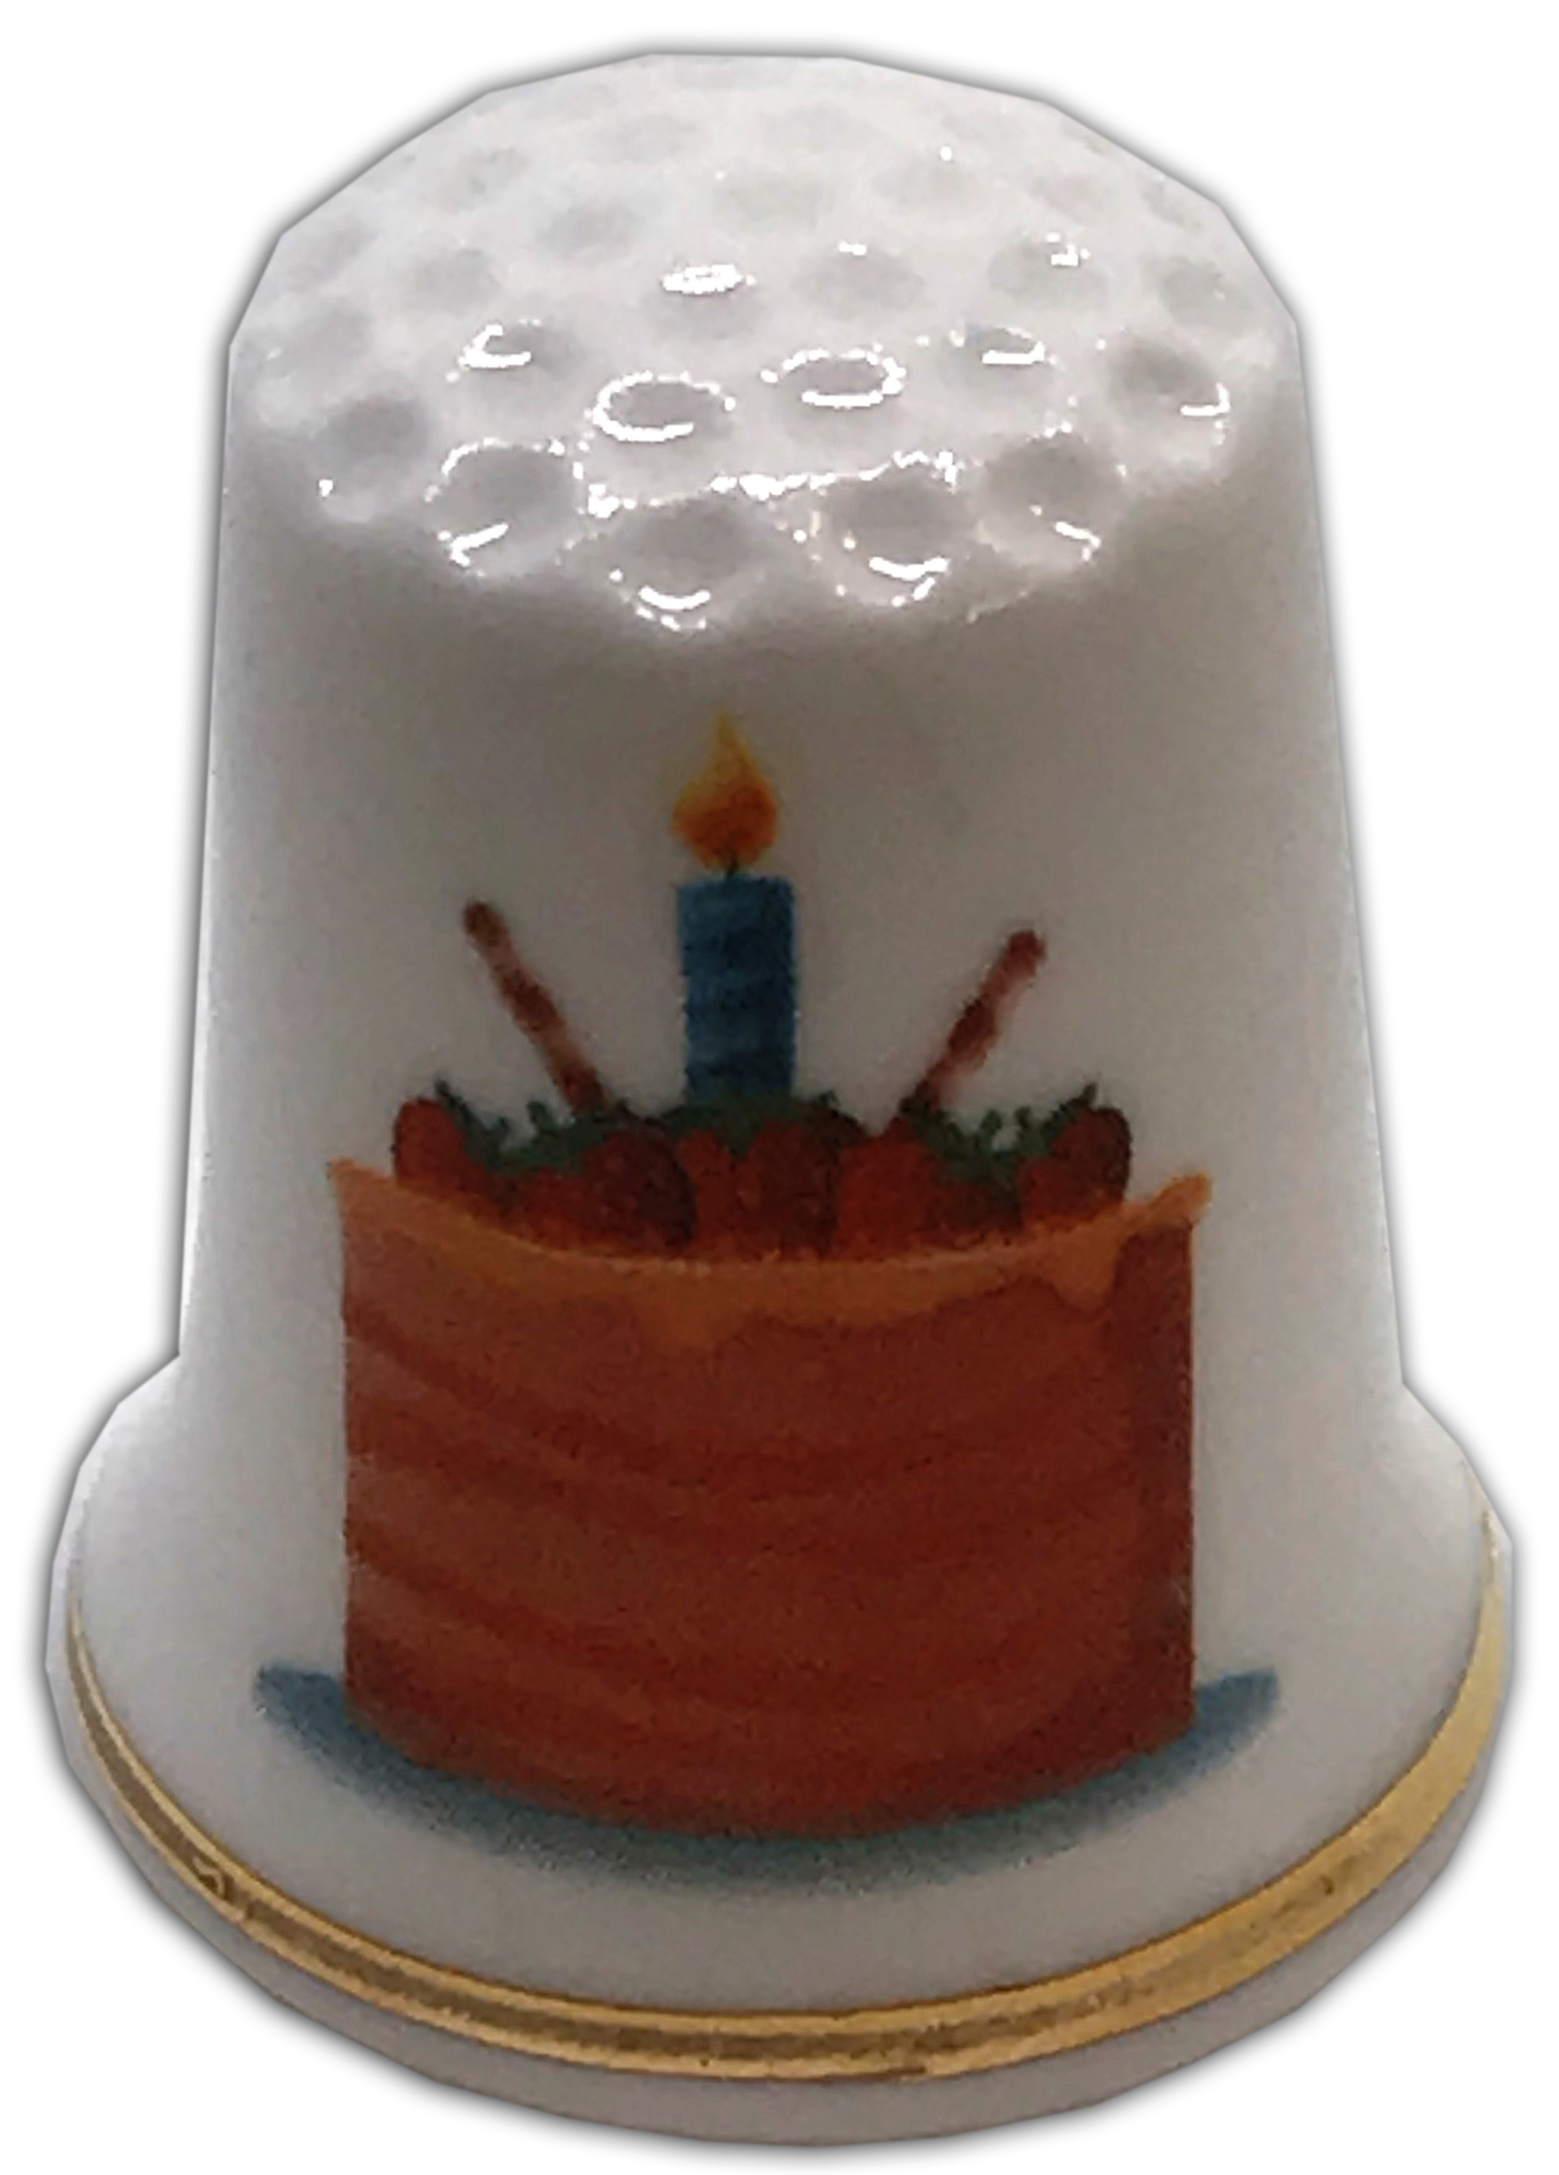 Marvelous Birthday Cake Personalised China Thimble Design 2 The Thimble Guild Birthday Cards Printable Nowaargucafe Filternl